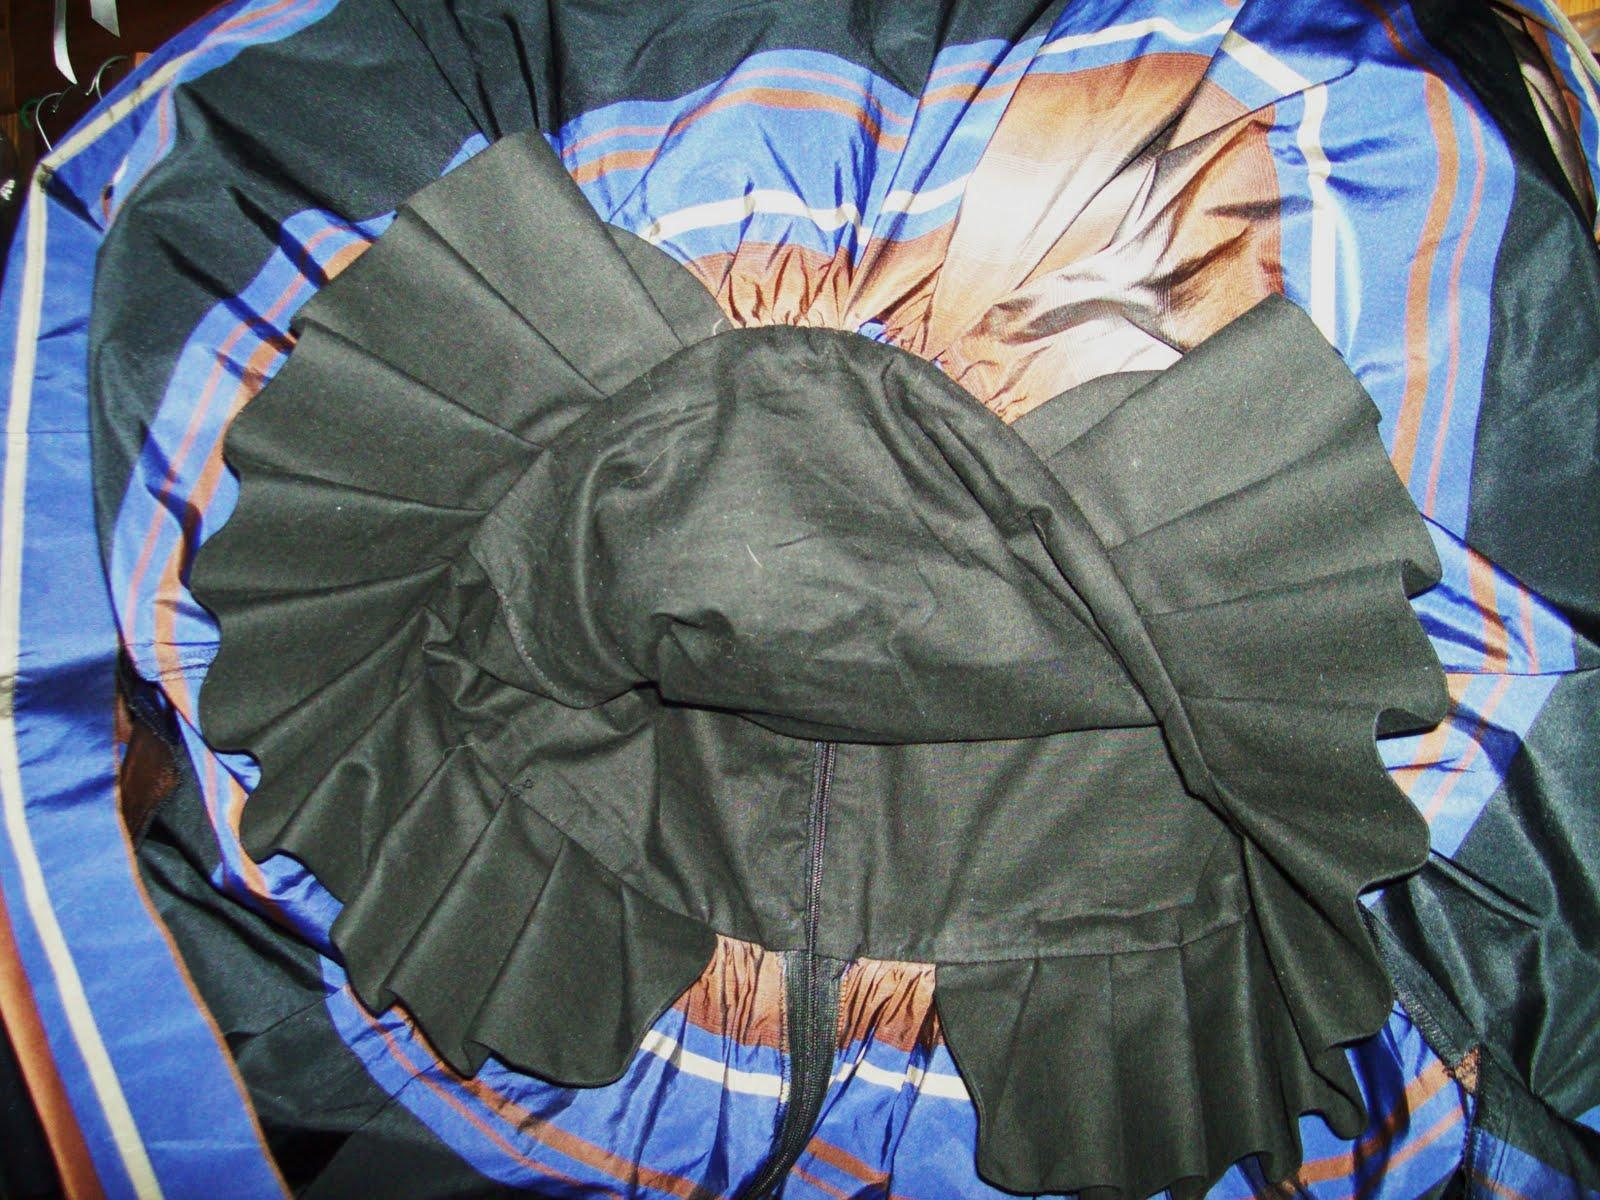 So back to the dress, it is poofy as it is made from a taffeta type material